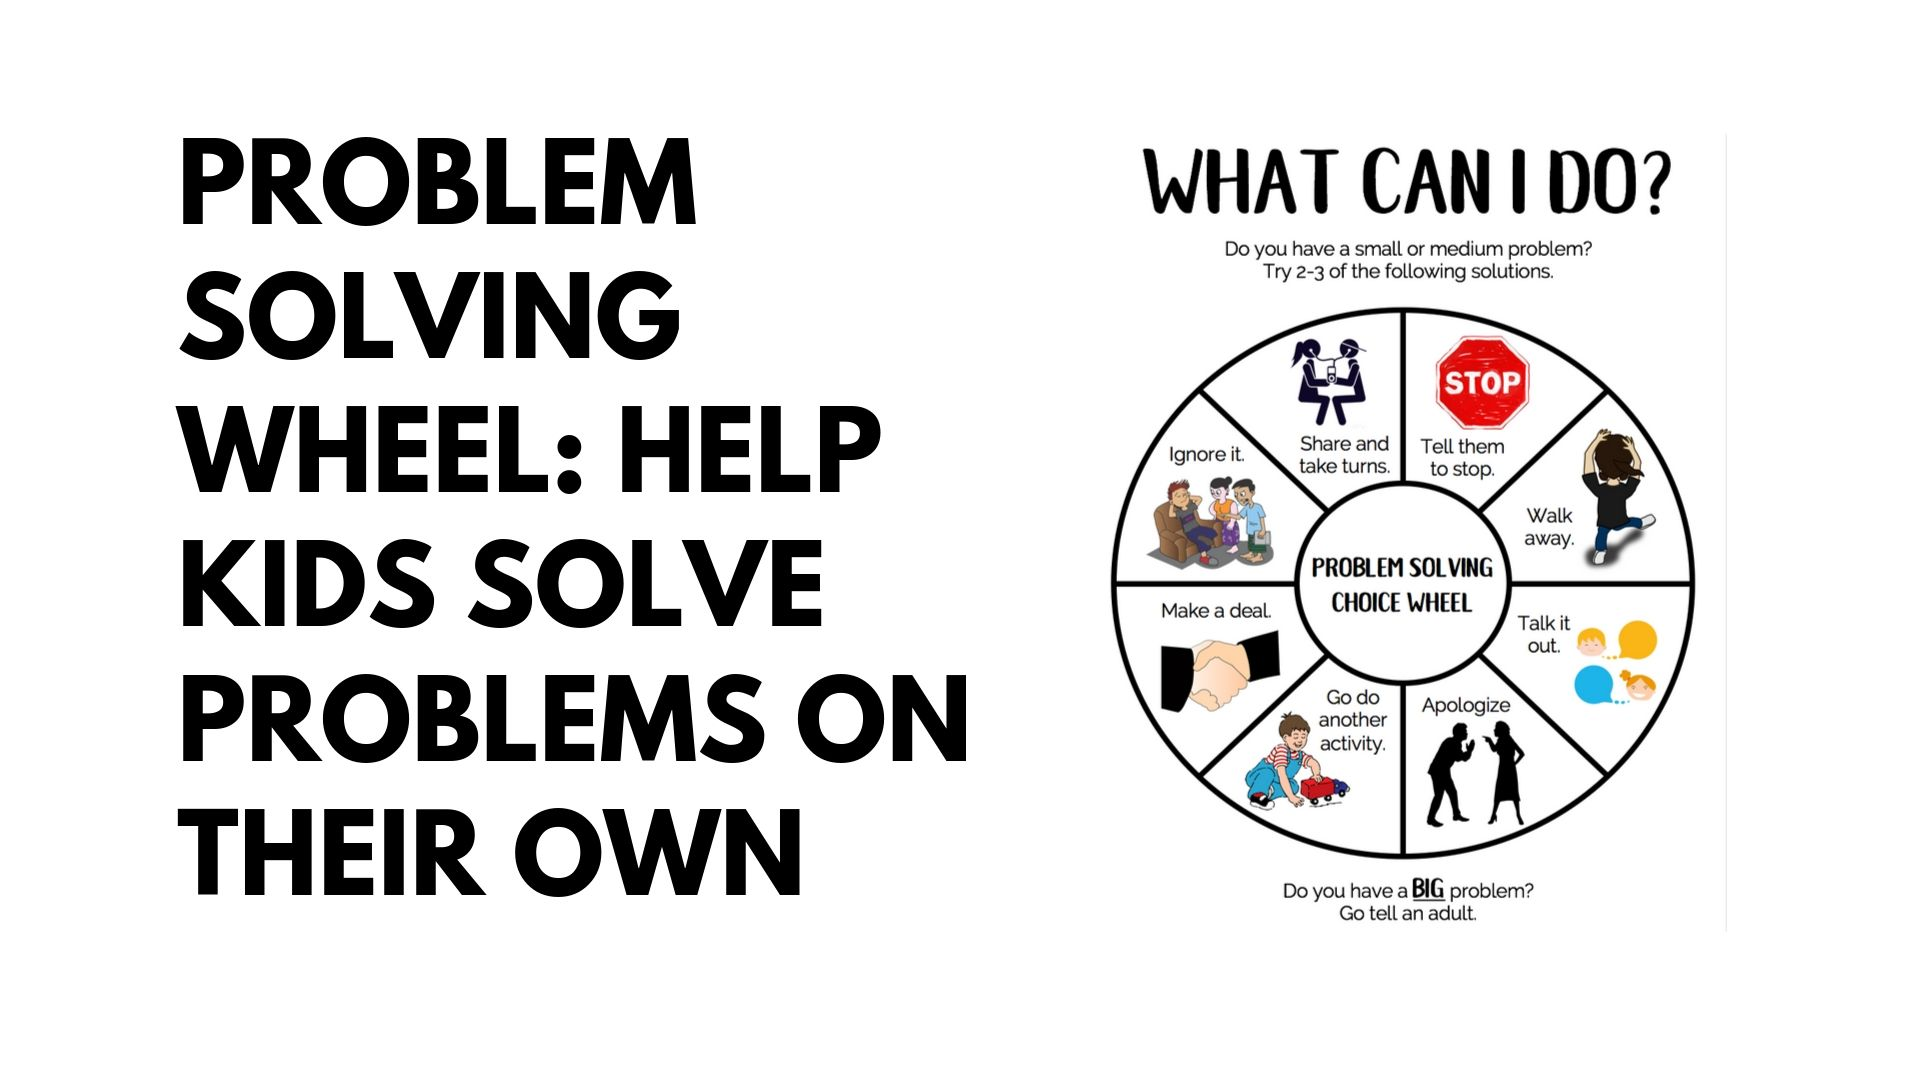 Problem Solving Wheel: Help Kids Solve Their Own Problems